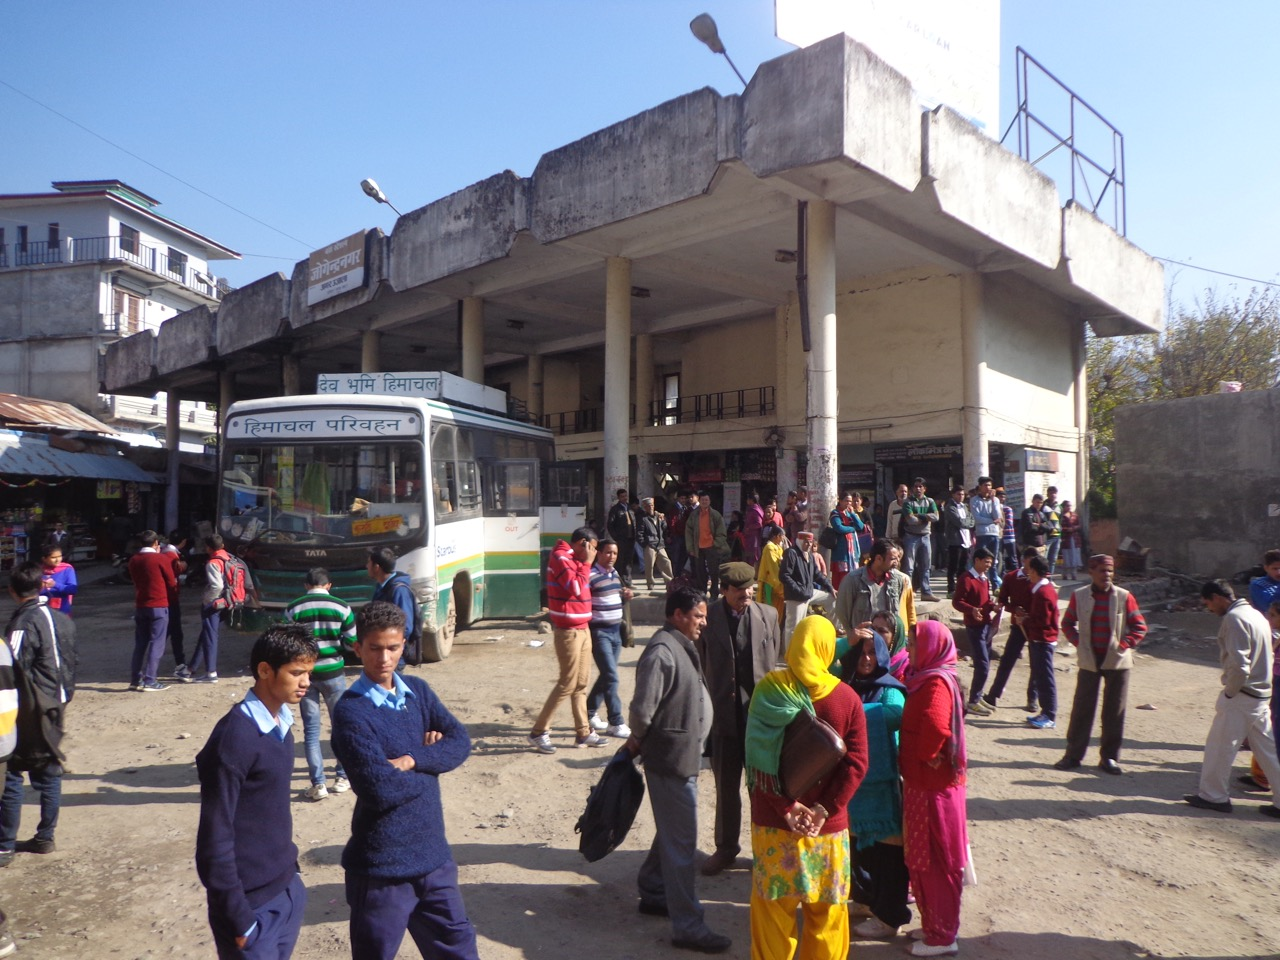 Joginder Nagar bus stand. It is situated midway between Palampur and Mandi. The bus took a 20 minutes break here.